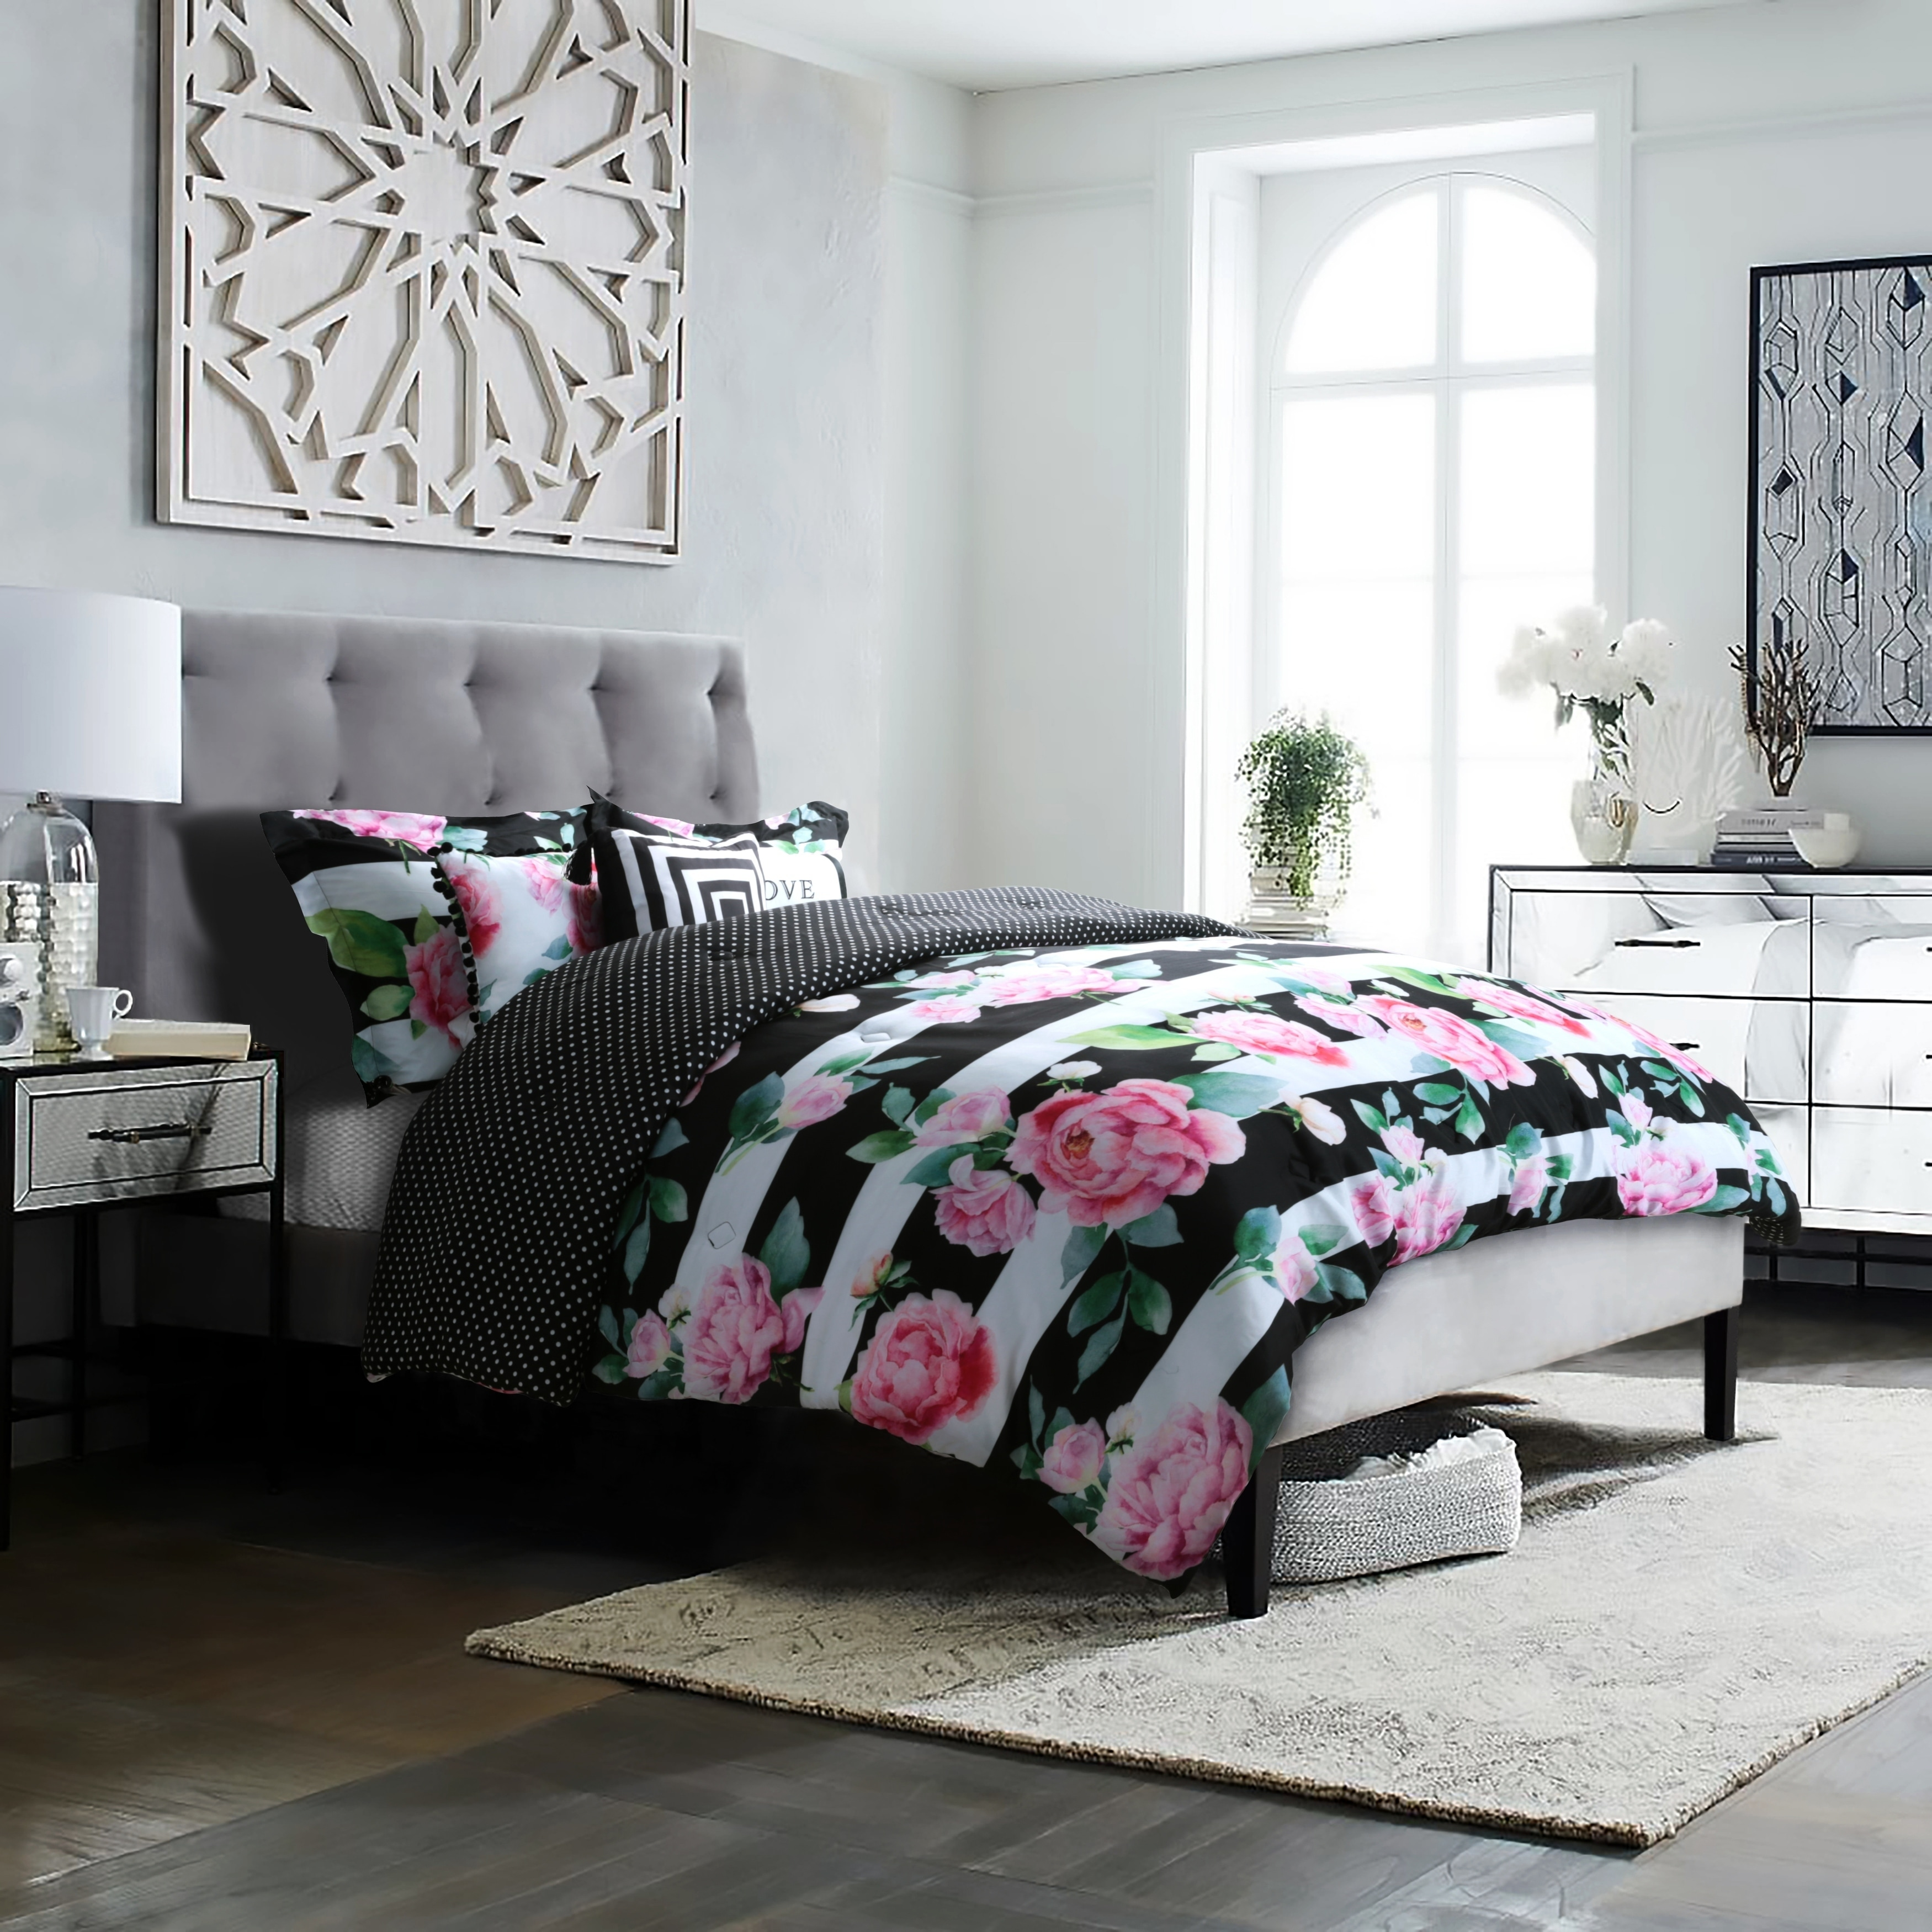 Studio8 Brand Love Printed 6 Piece Comforter Set Hand Painted Floral And Stripe In Pink Green White And Bold Black Overstock 28020808